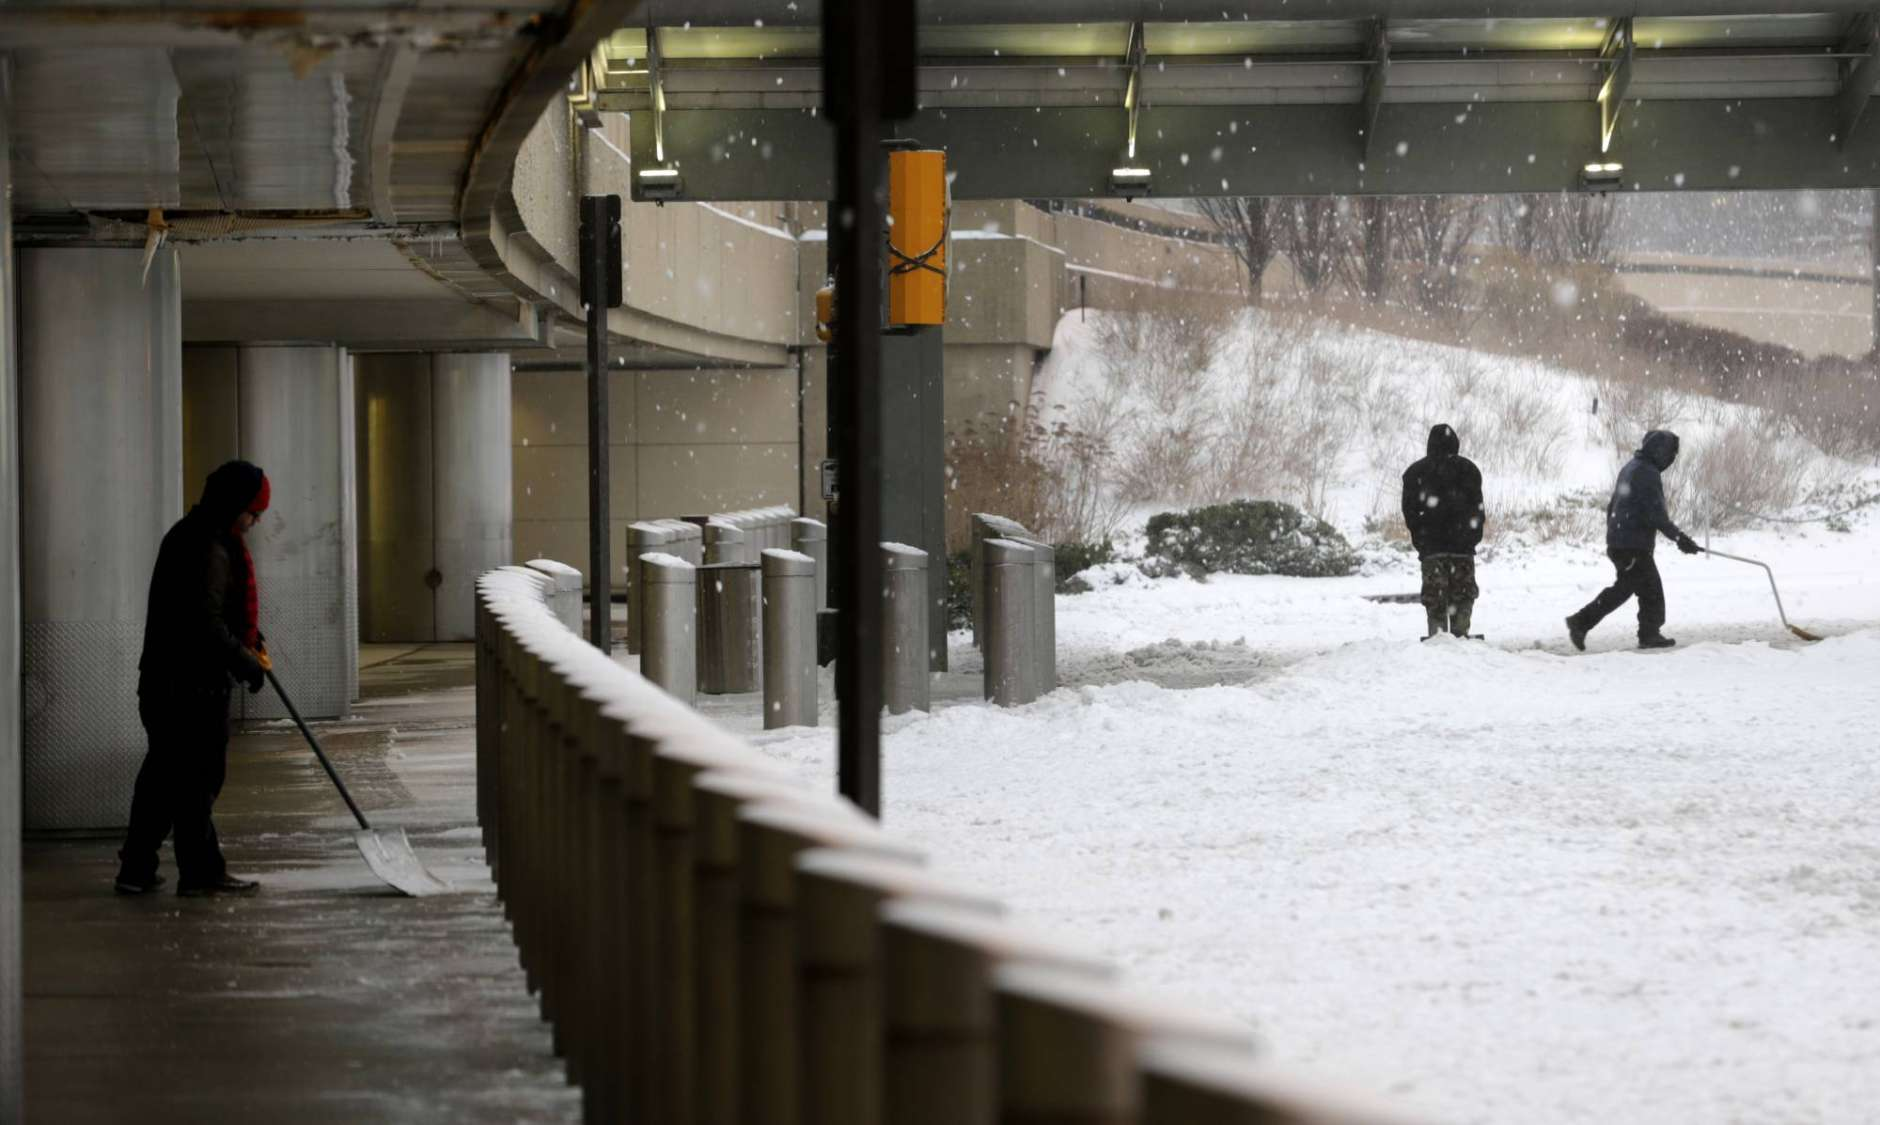 People shovel snow at Newark Liberty International Airport in Newark, N.J., Tuesday, March 14, 2017. A storm pounded the Northeast with more than a foot of snow in places Tuesday, paralyzing much of the Washington-to-Boston corridor after a remarkably mild February had lulled people into thinking the worst of winter was over. (AP Photo/Seth Wenig)